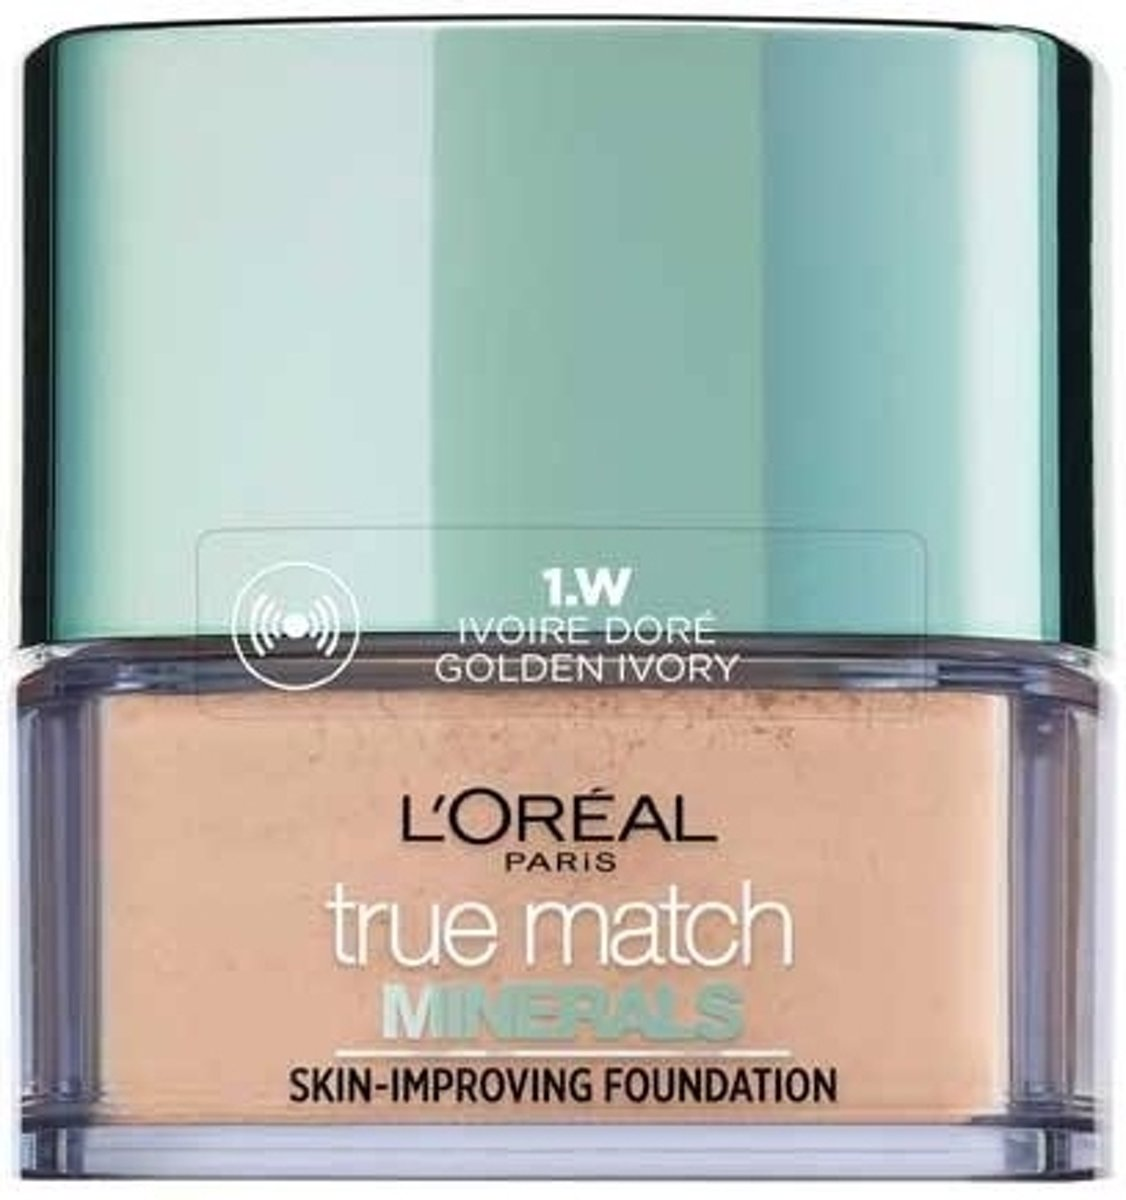 LOréal Paris (public) True Match Mineral foundationmake-up Pot Poeder 10 g